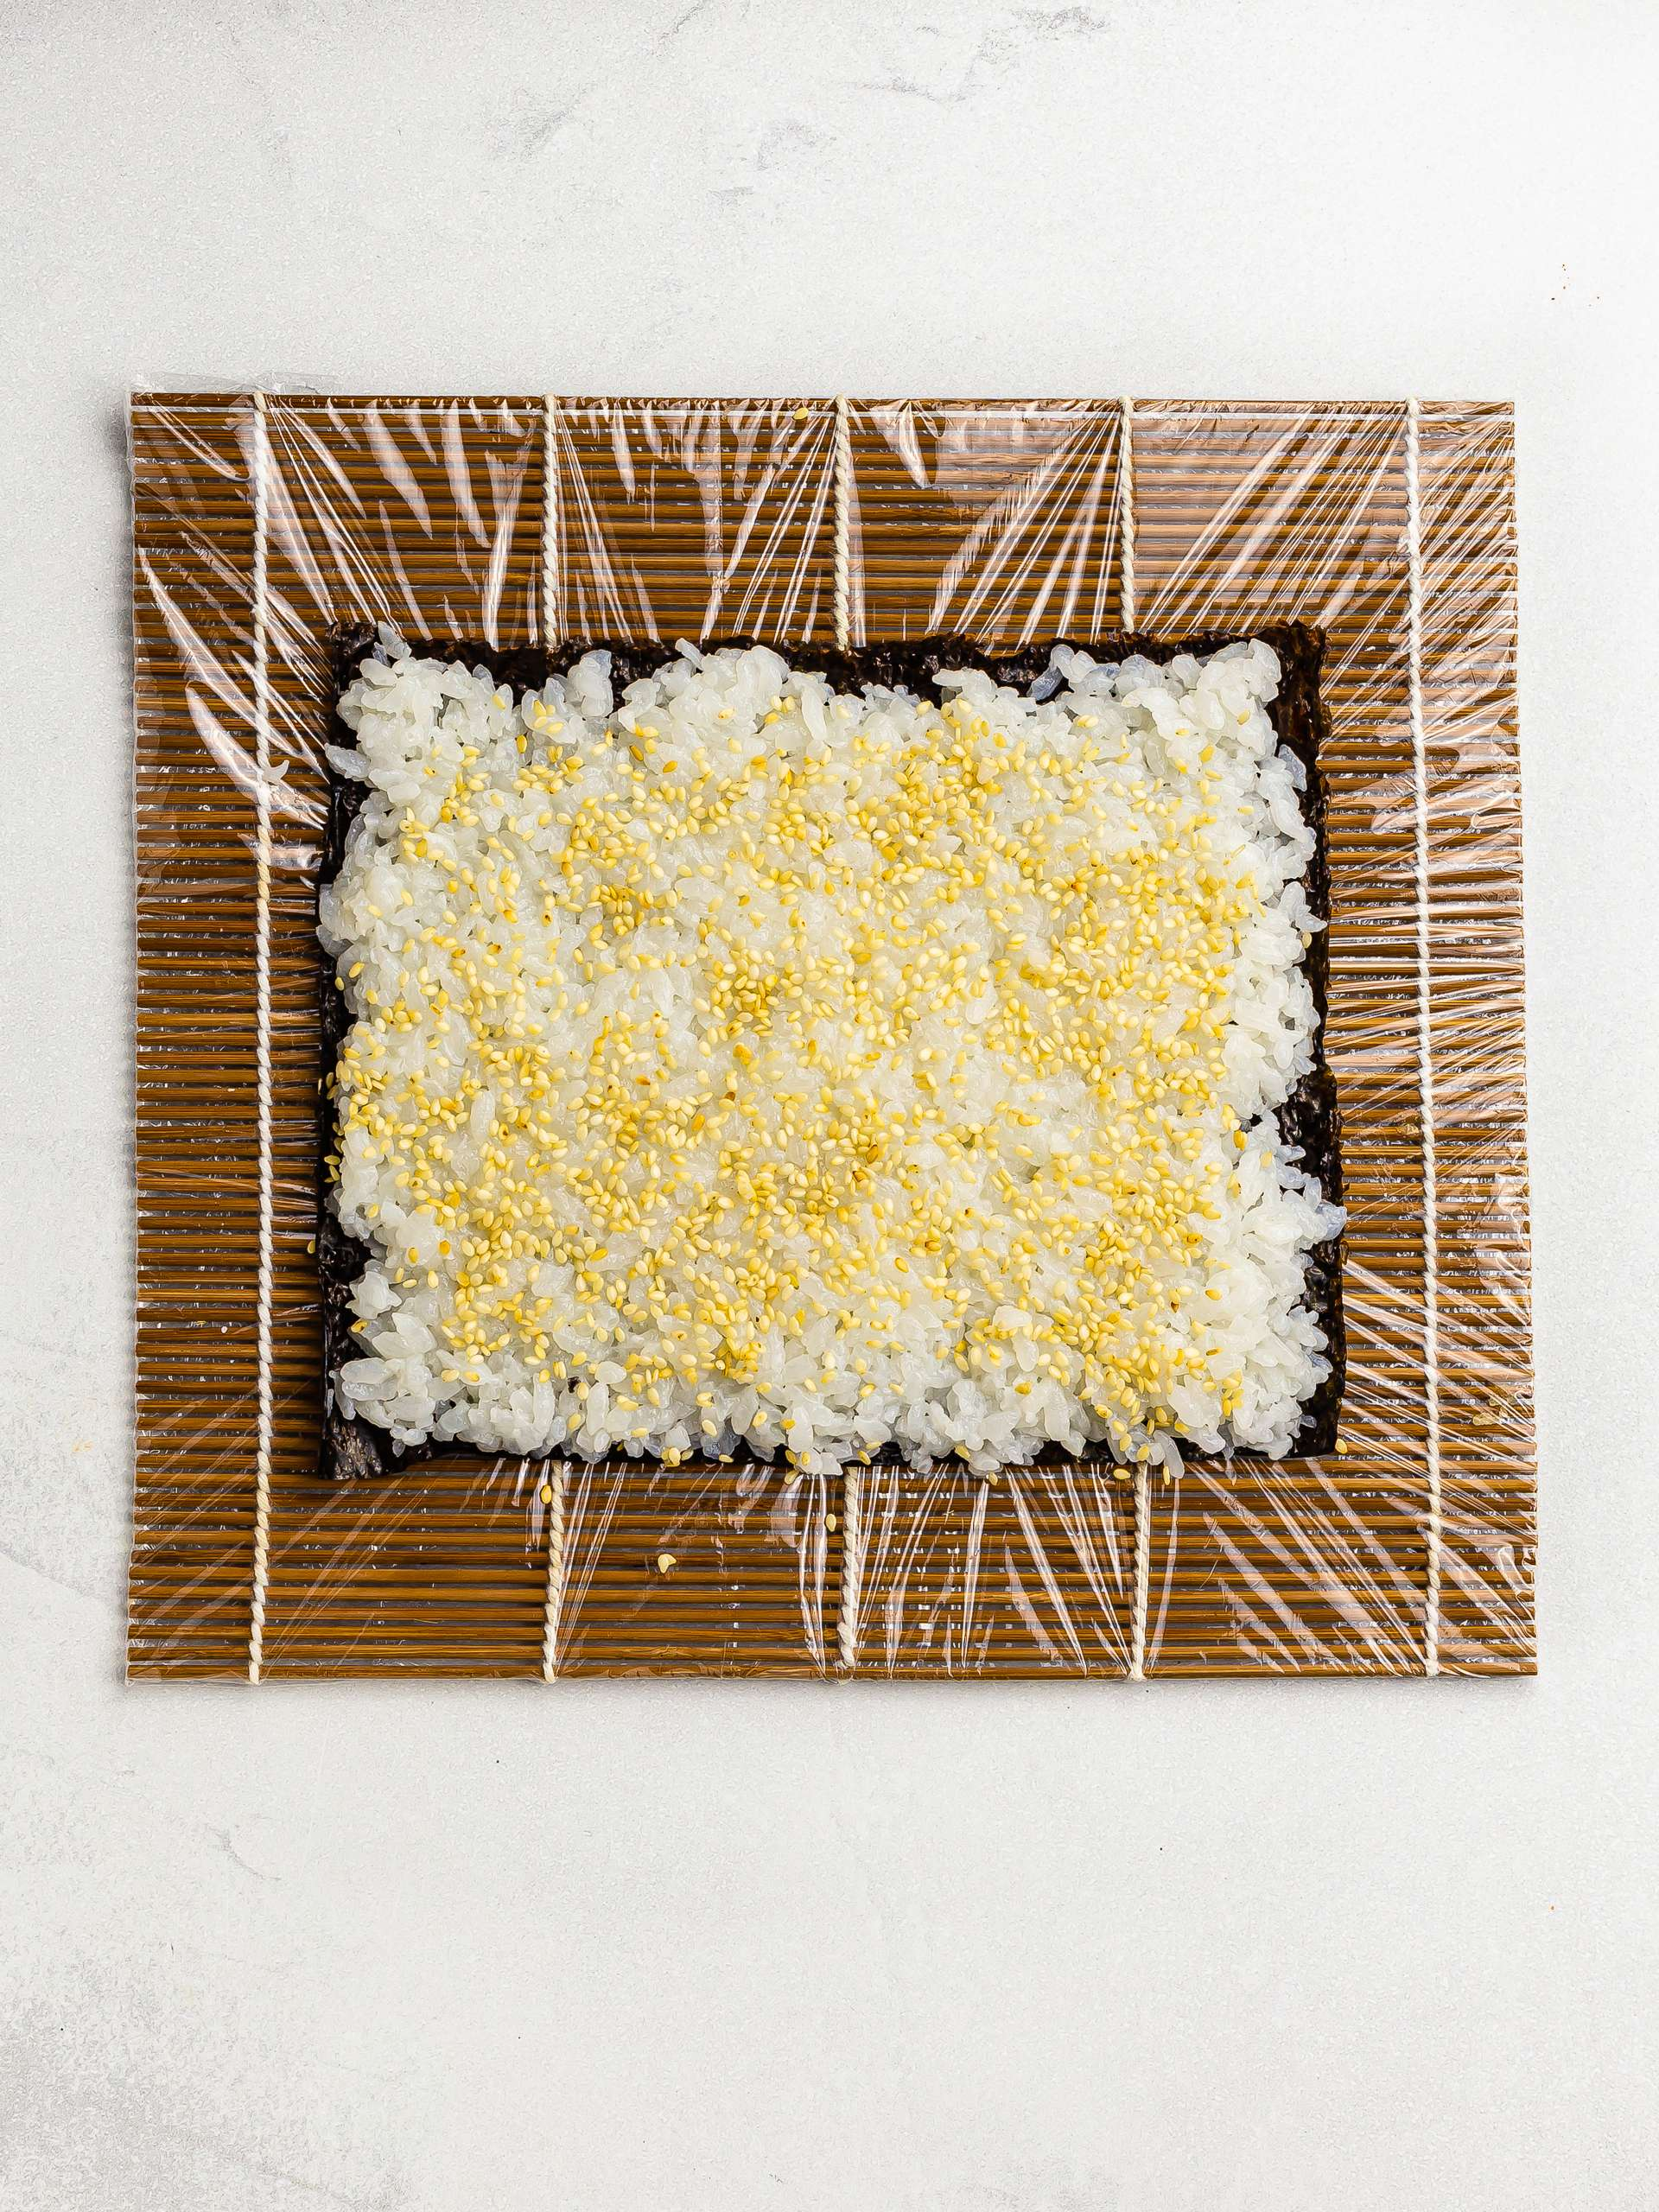 nori sheet with rice and sesame seeds